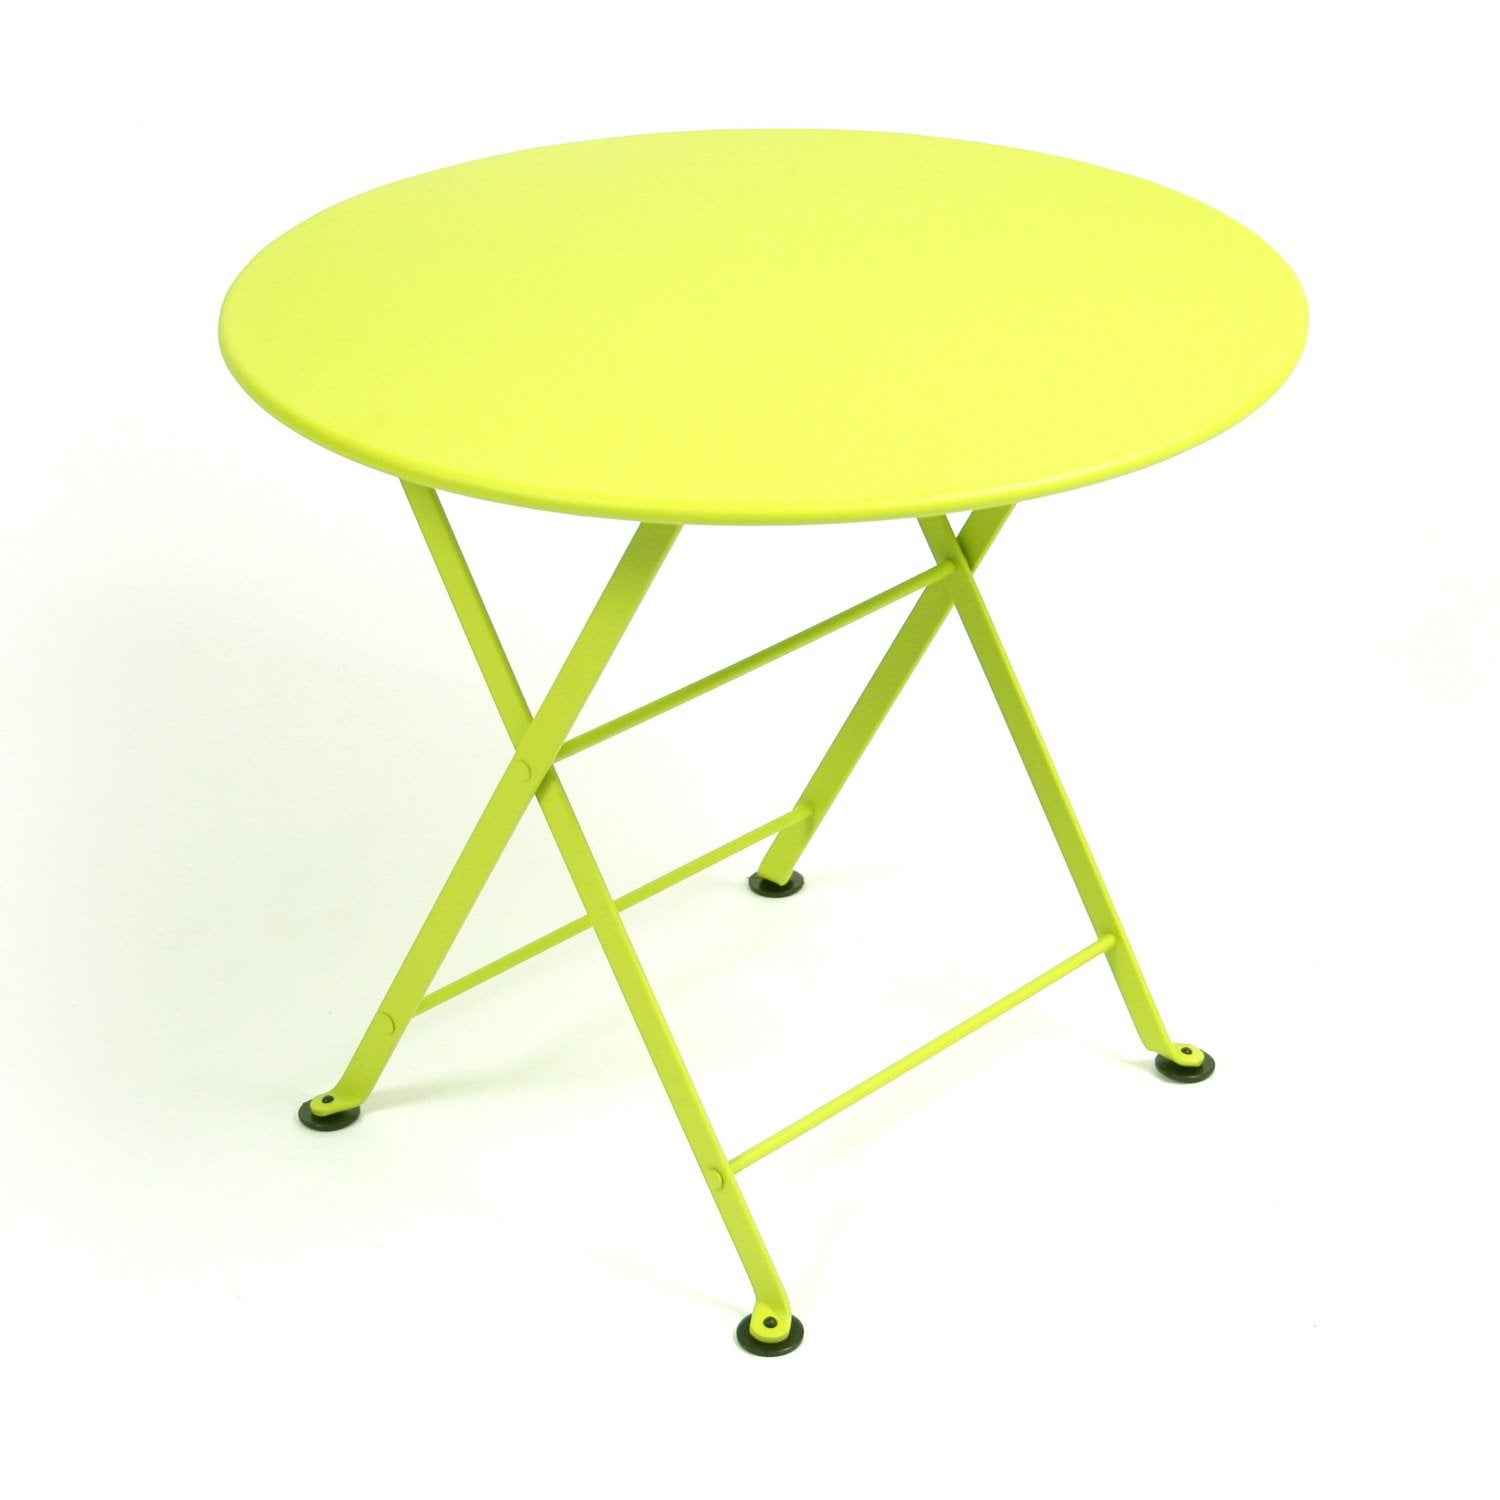 Table basse ronde tom pouce fermob leroy merlin - Fermob tom pouce ...